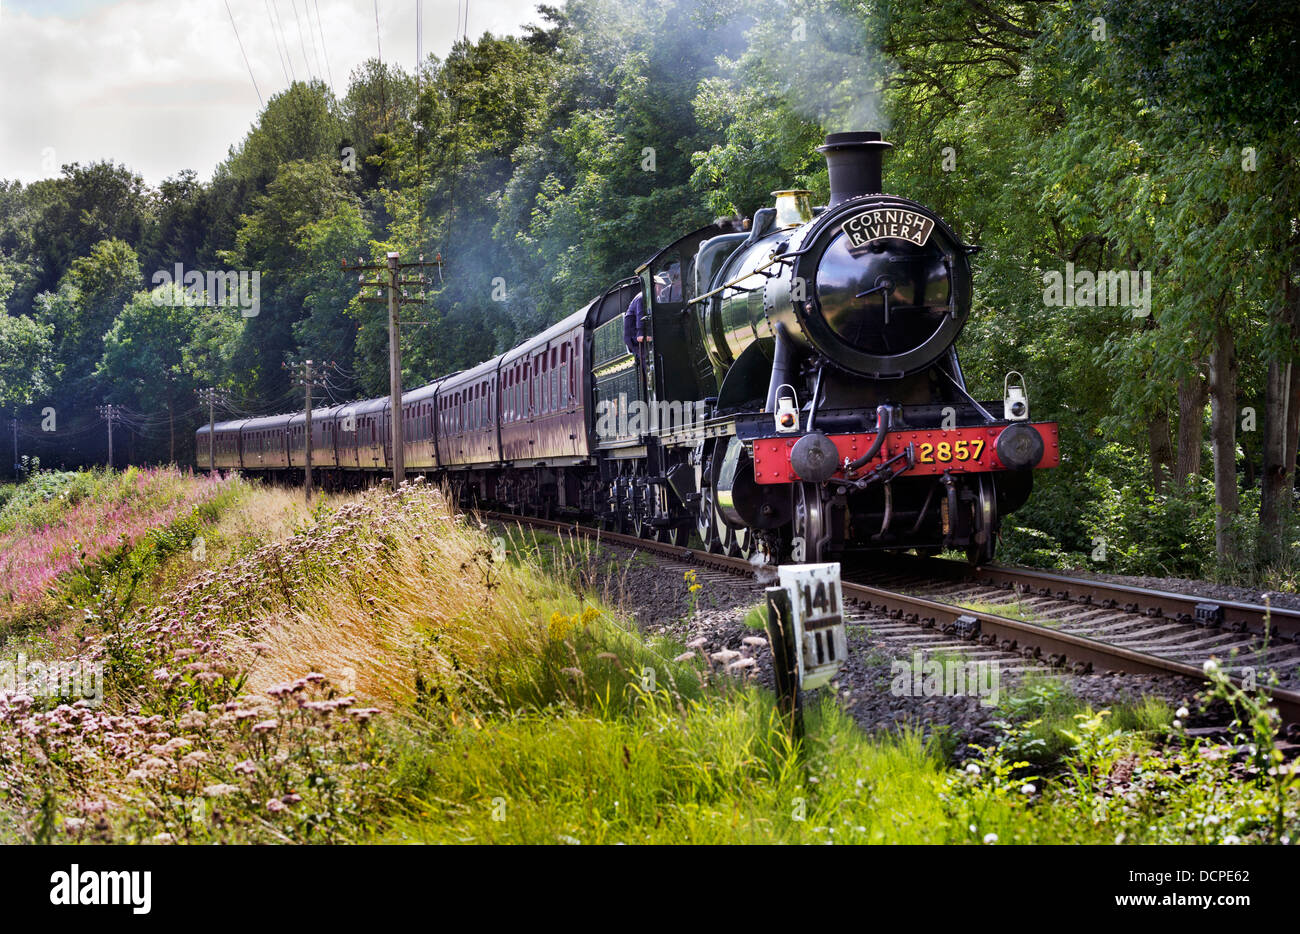 GWR locomotive No 2857 leaves Arley for Bridgnorth,on a Summer's day on the Severn Valley Railway, Worcestershire, - Stock Image